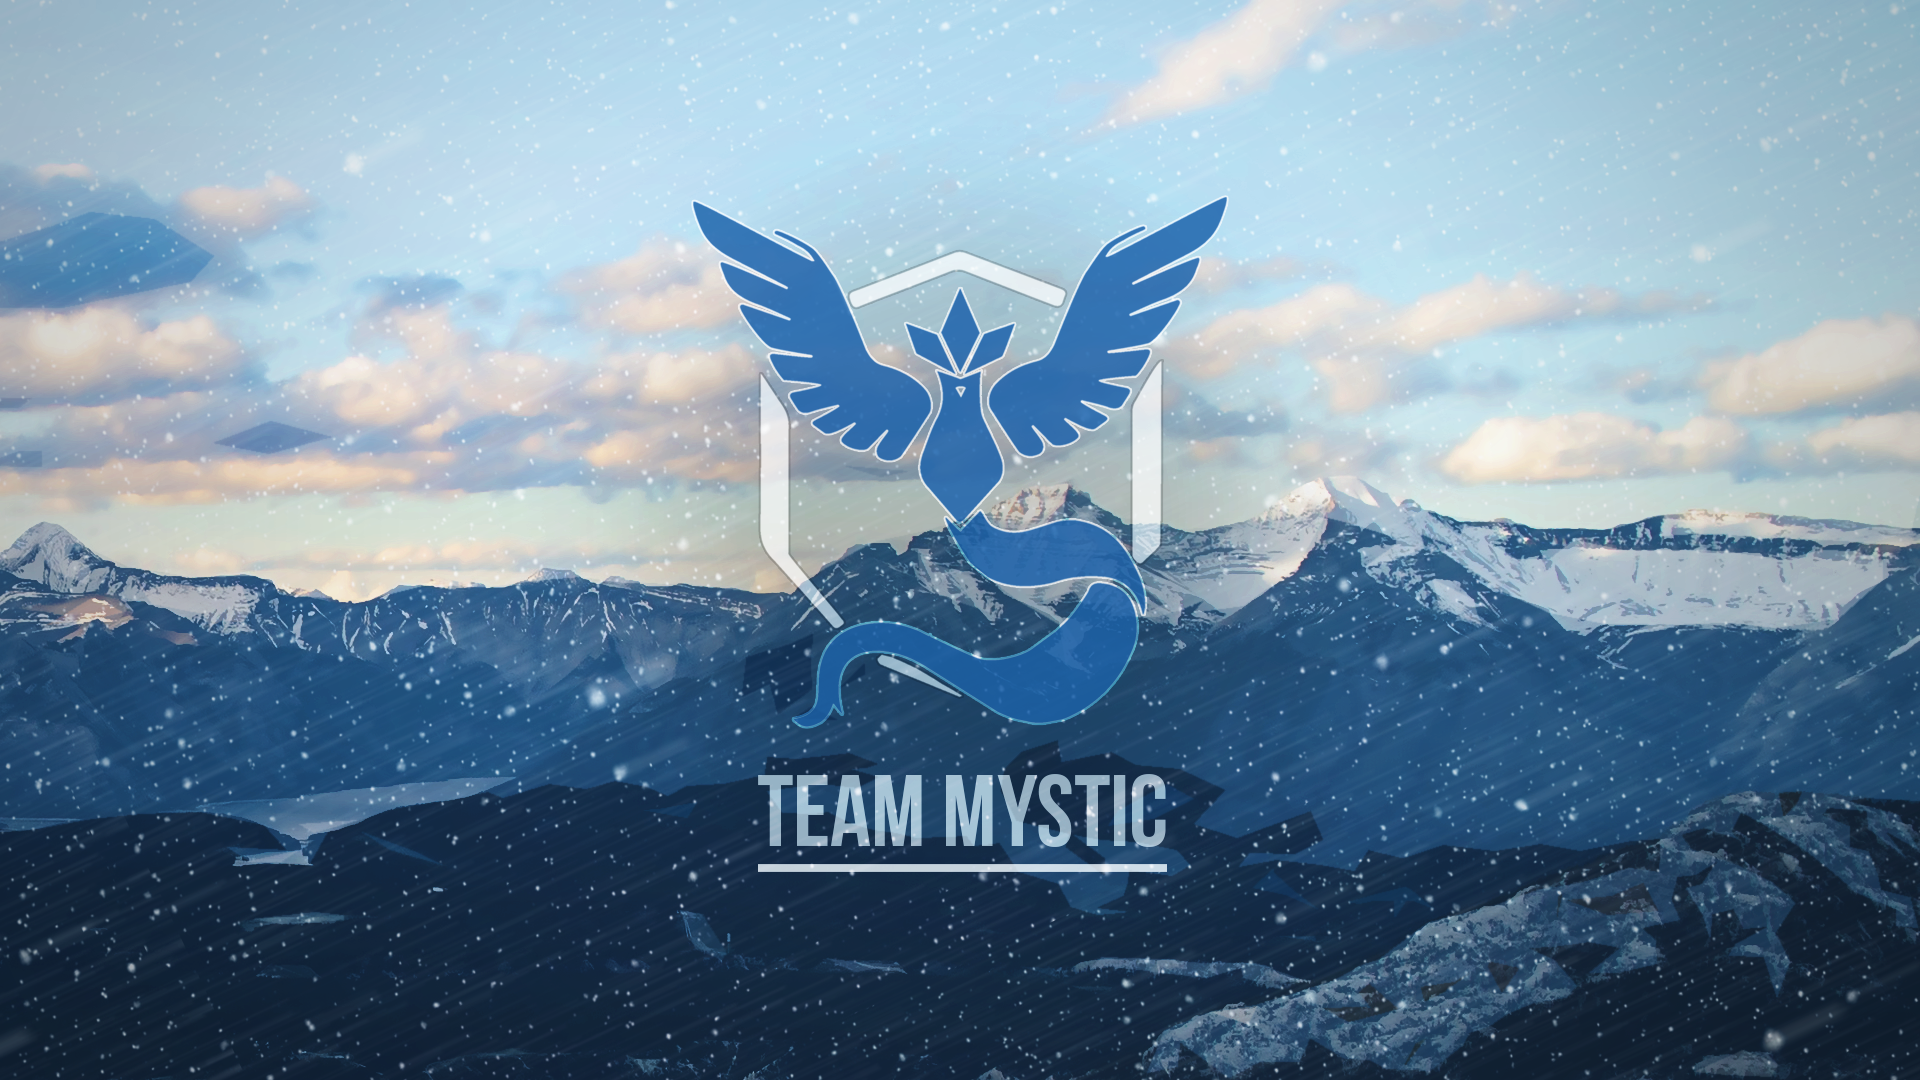 Team Mystic Wallpaper Desktop Background Is Cool Wallpapers